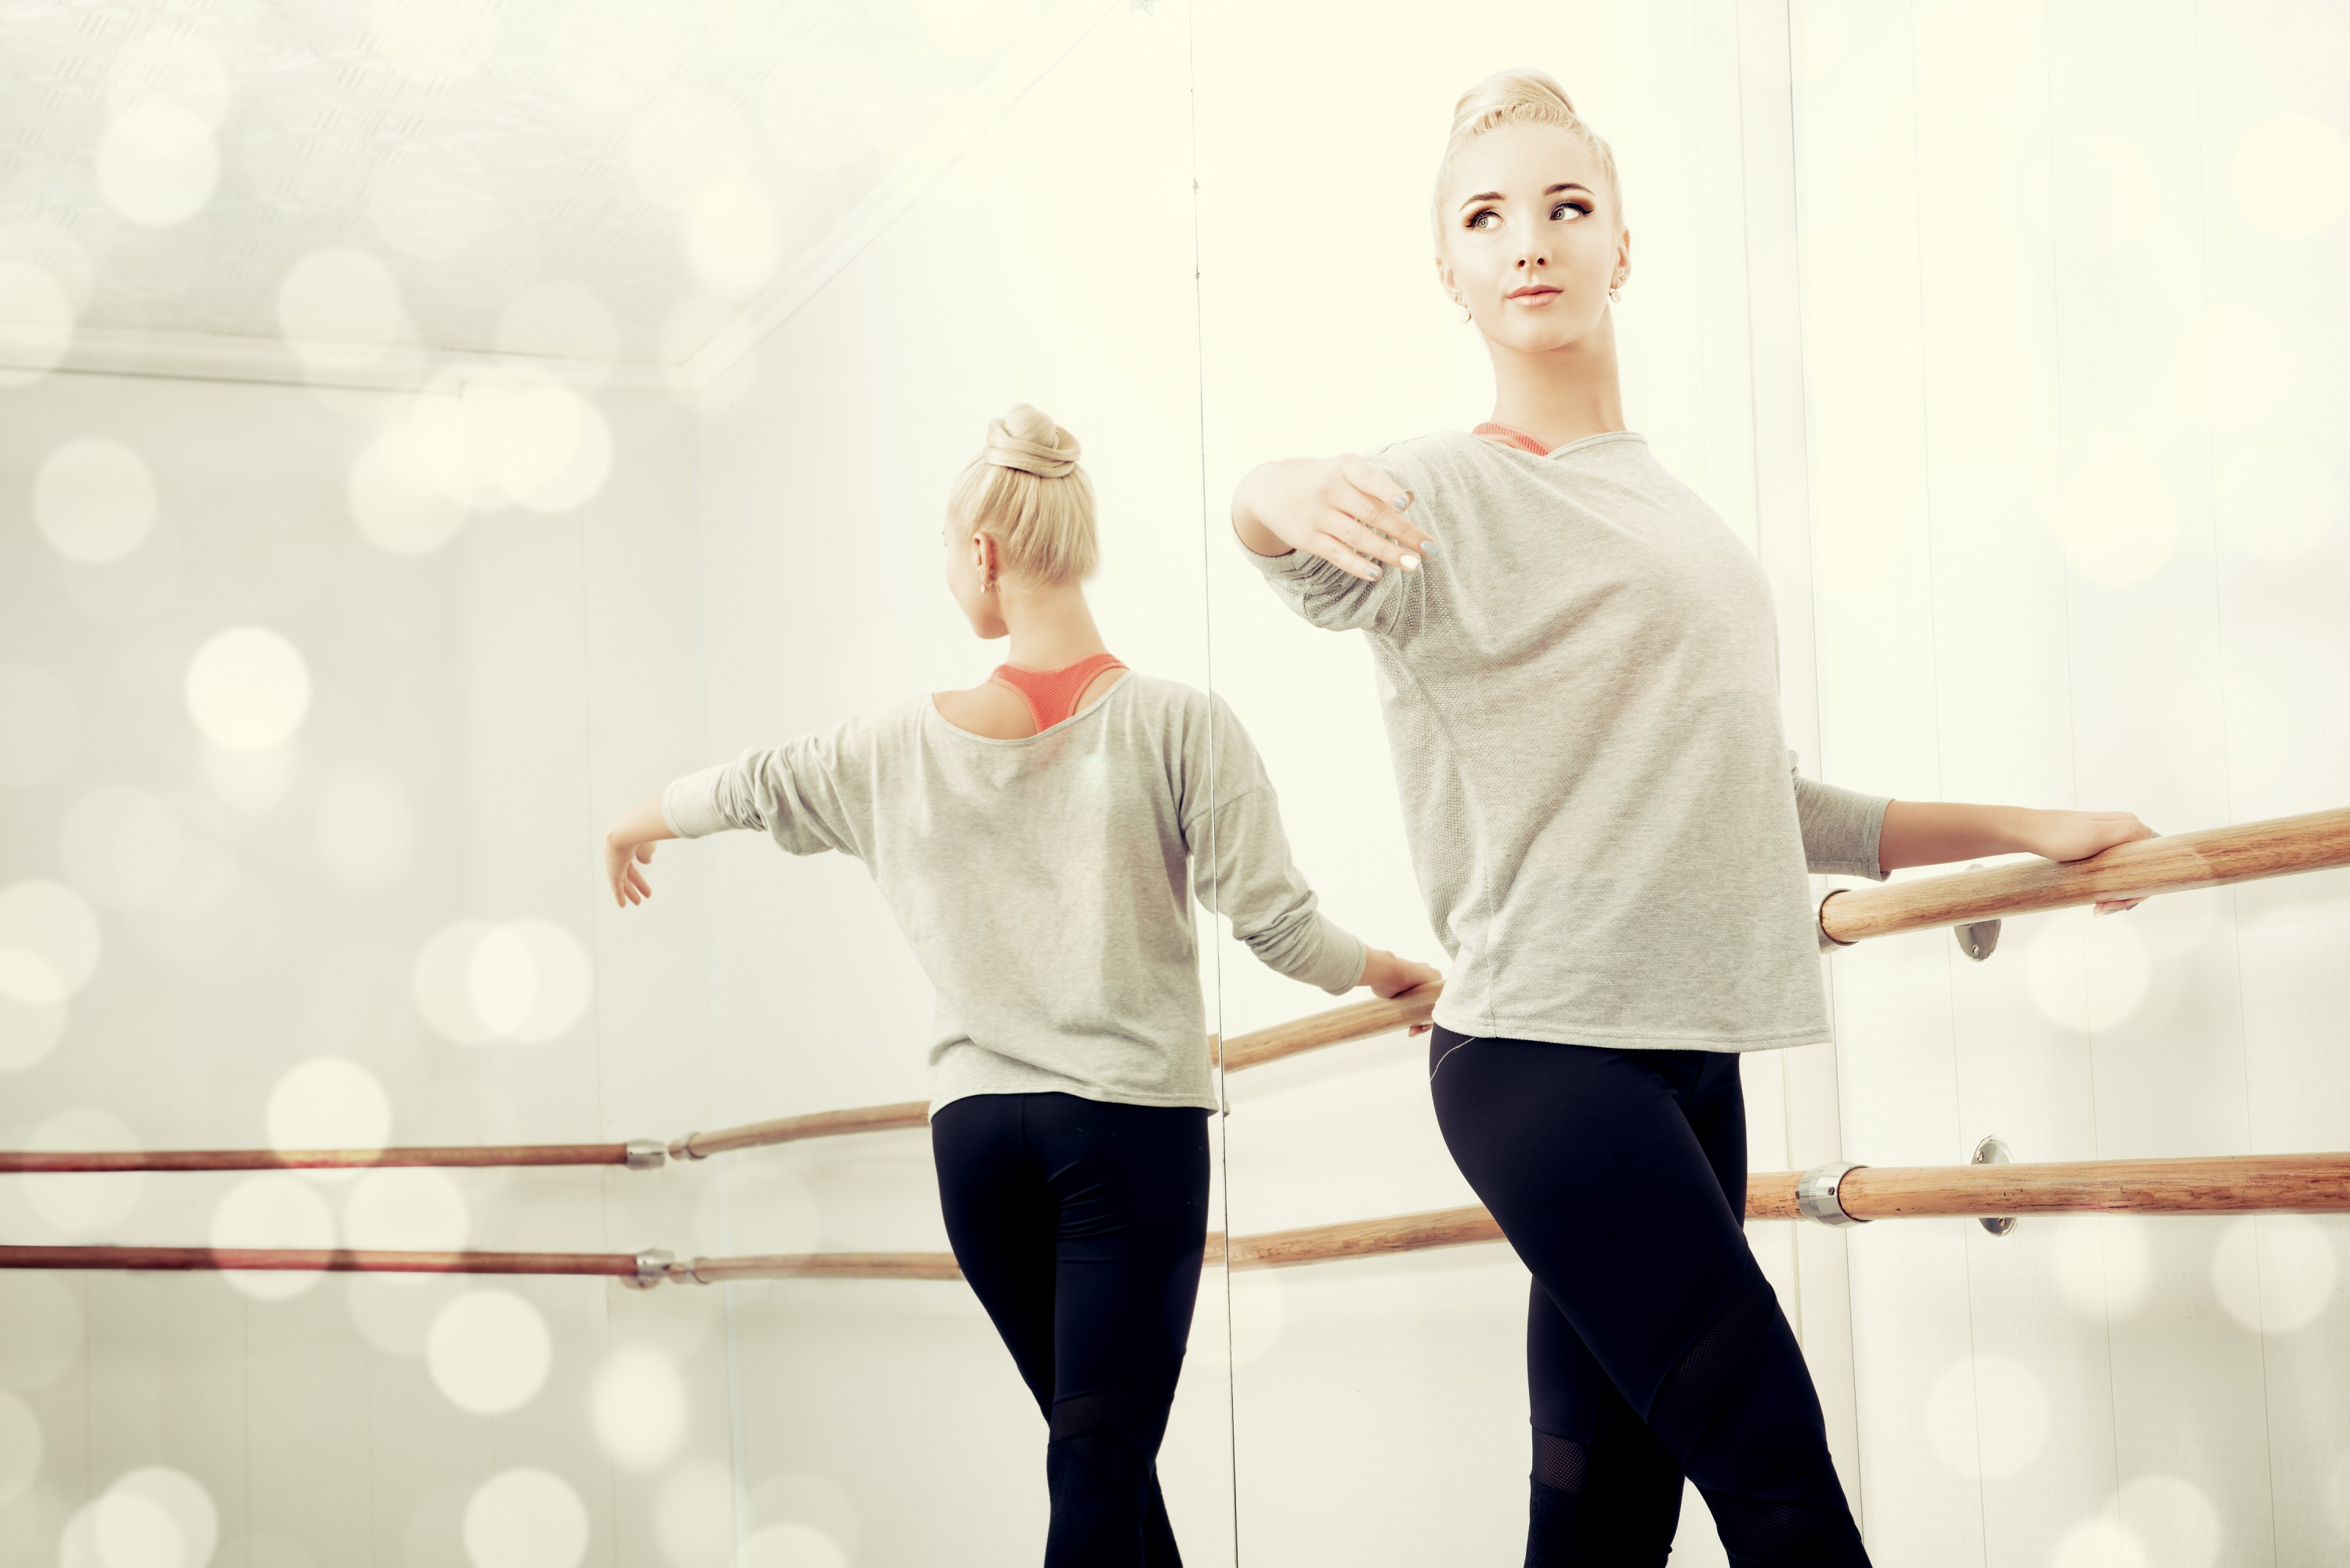 CAN BALLET IMPROVE MY HEALTH?